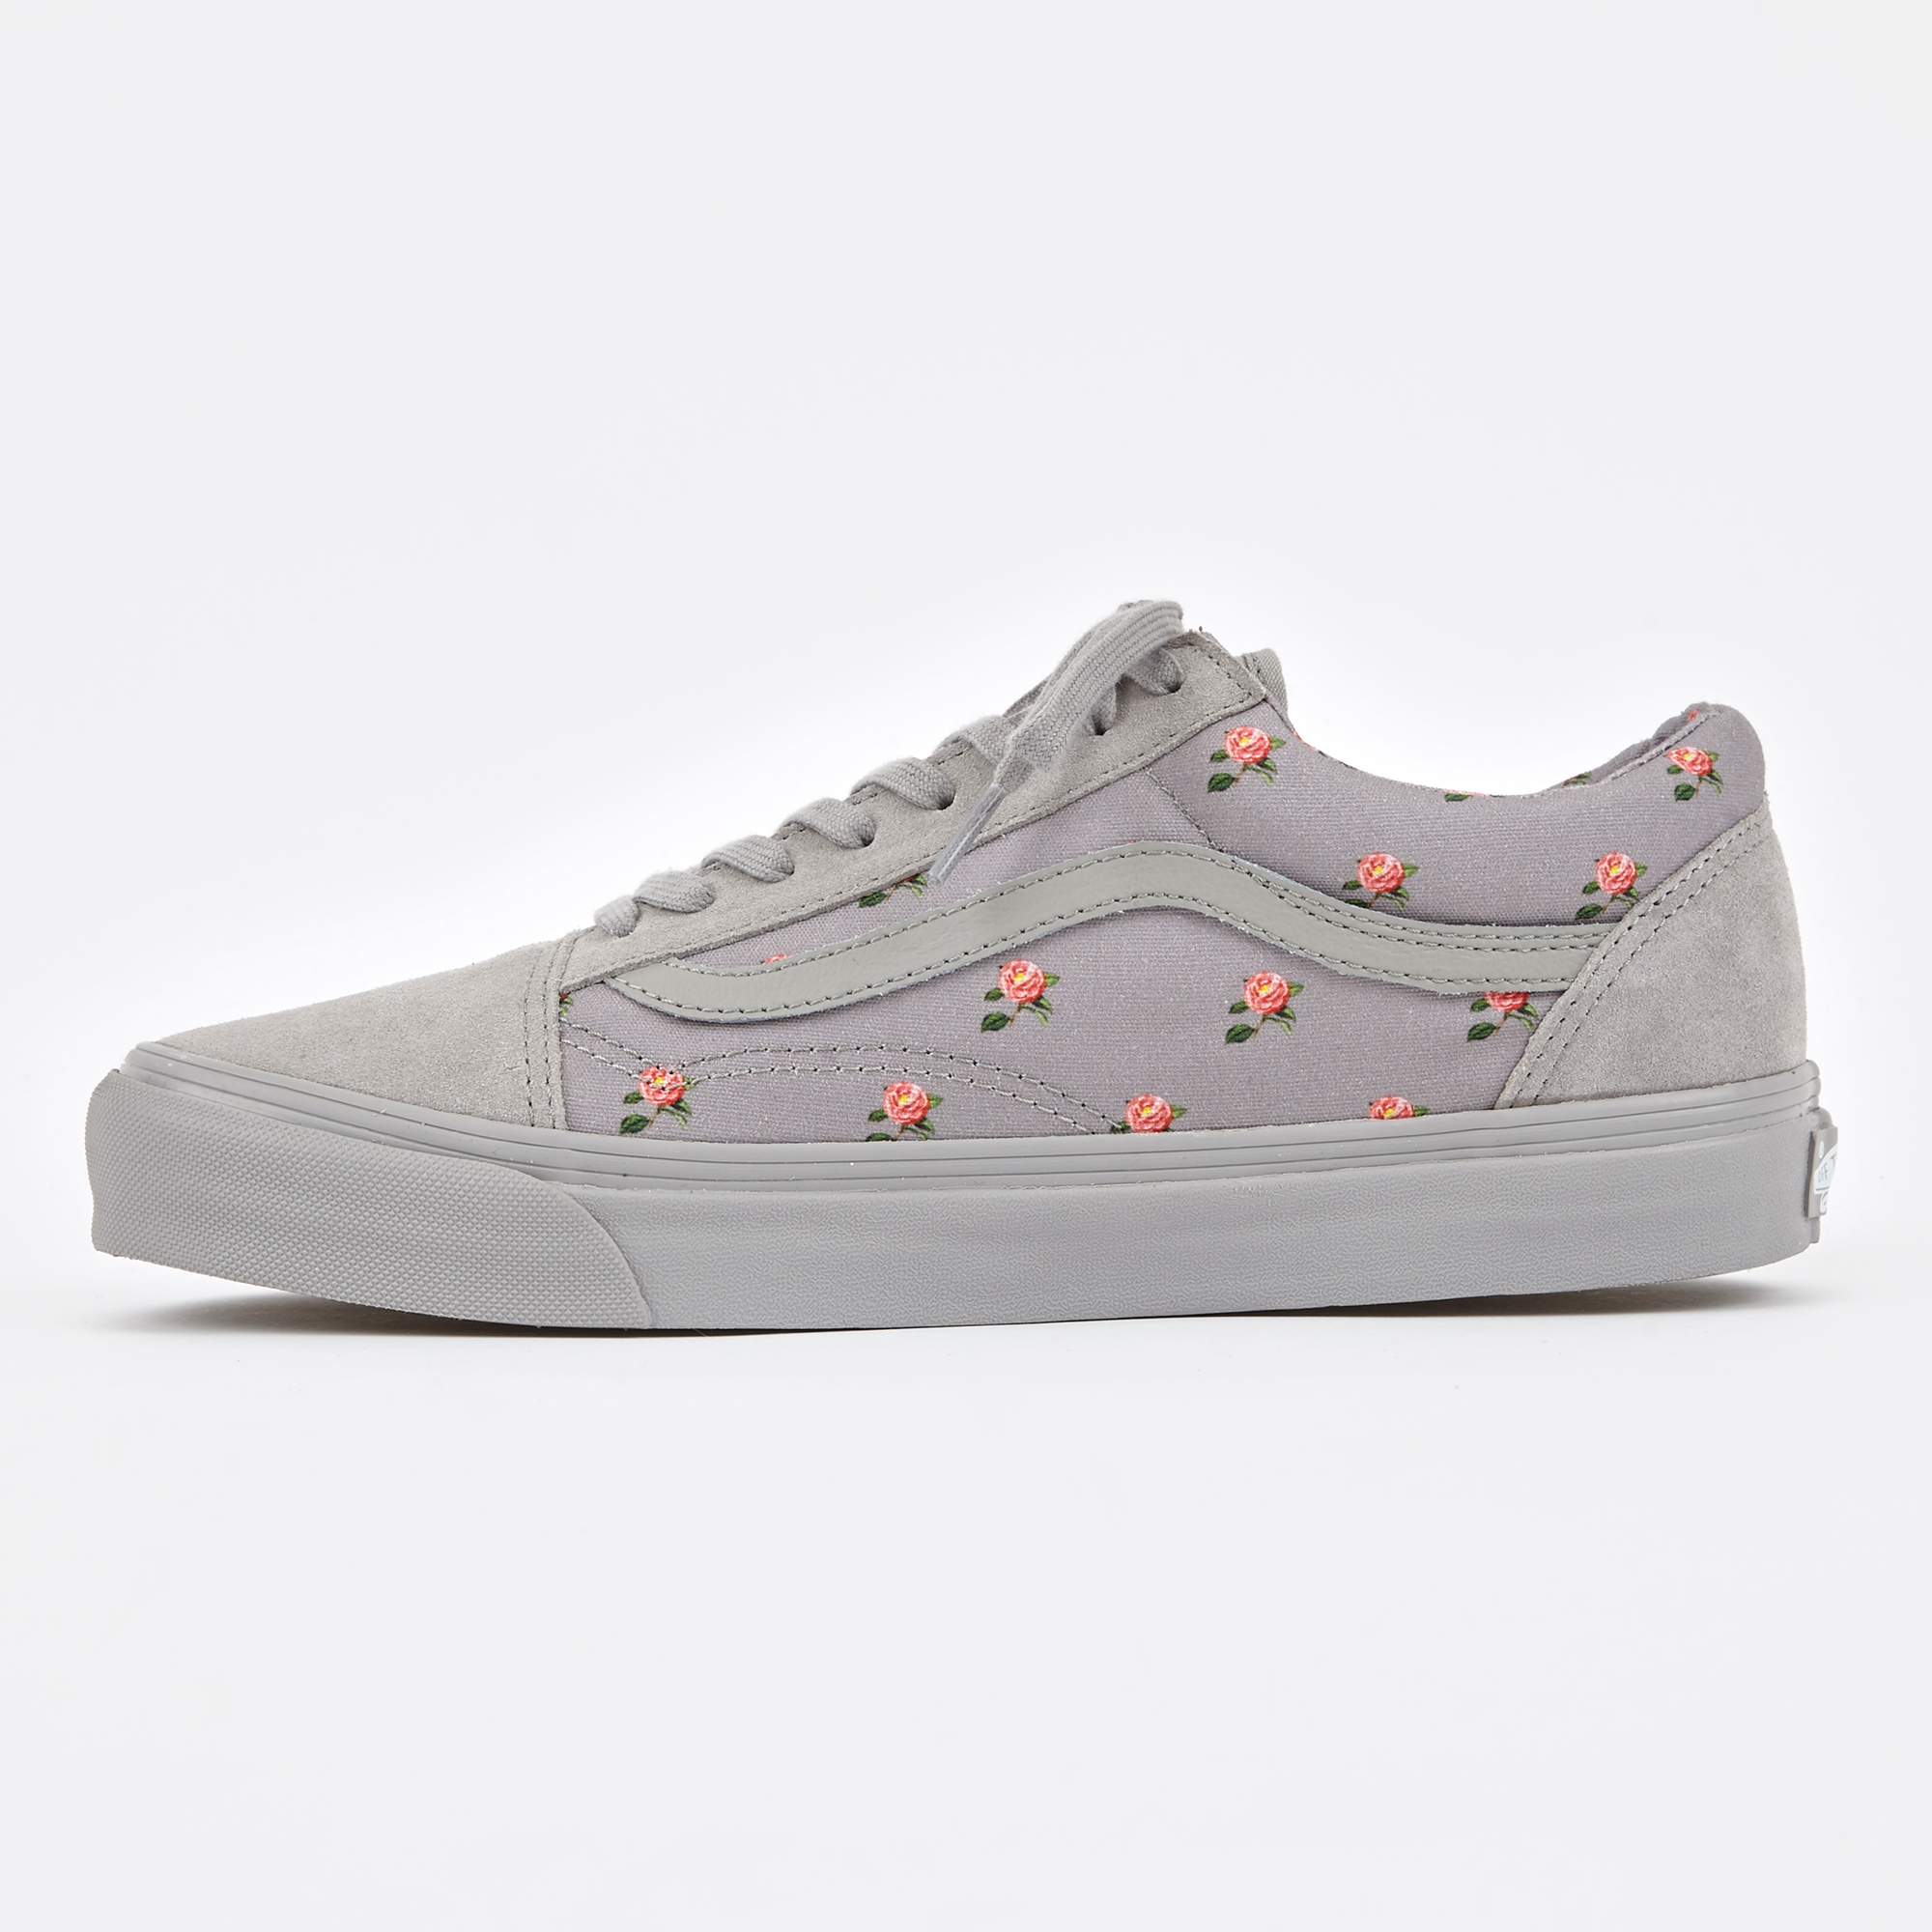 c336cb0f9e Vans Vault x Undercover OG Old Skool LX - Small Flowers Grey